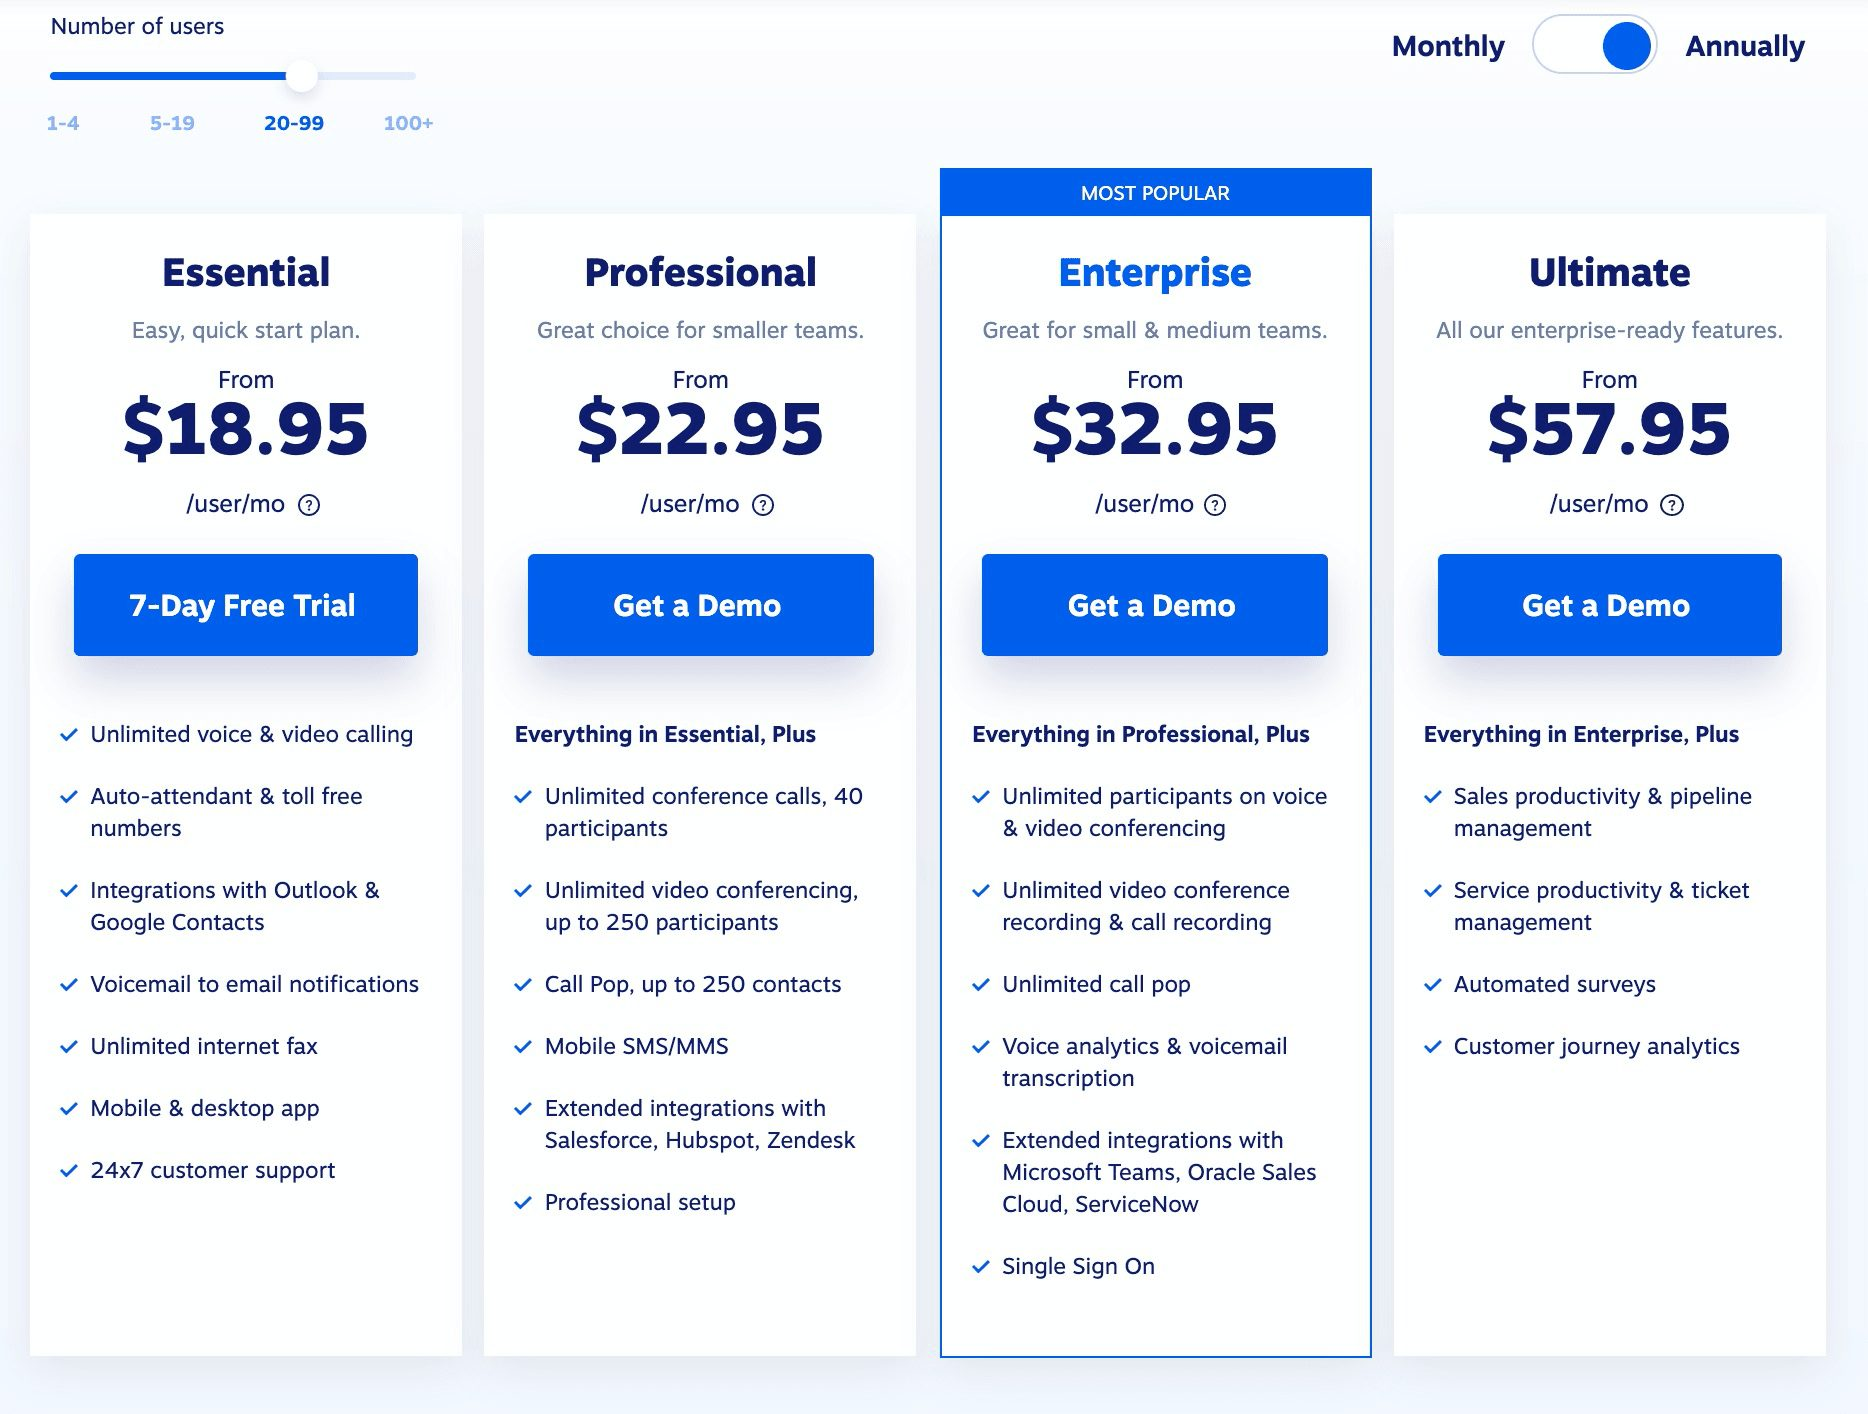 Nextiva provides all-inclusive UCaaS features for less than $60 per month per user.